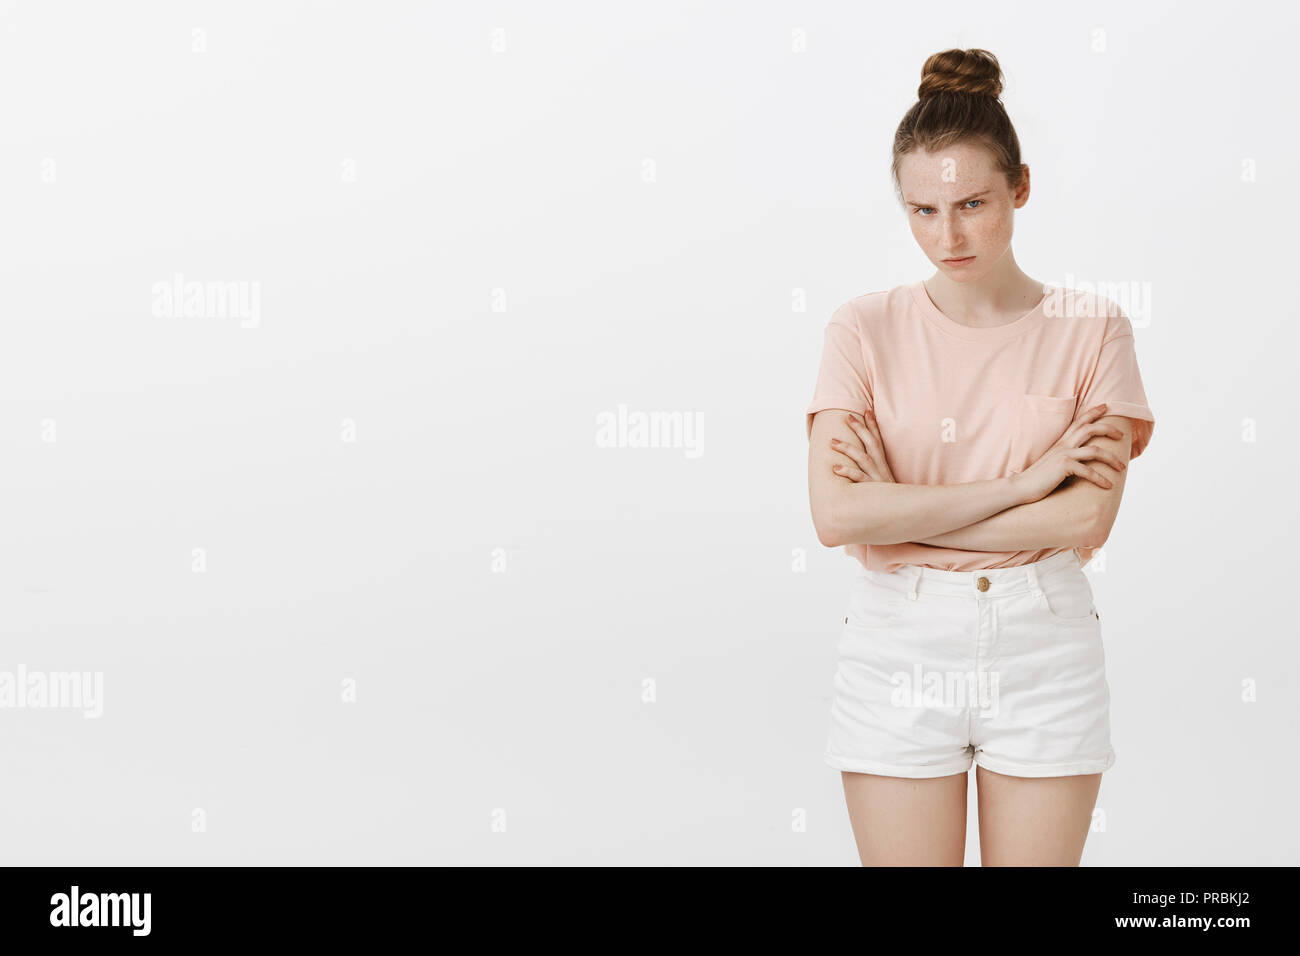 Cute girl feeling mad friend ate last cookie. Displeased angry woman with stylish bun hairstyle, looking from under forehead and frowning with evil expression, holding hands crossed over chest - Stock Image